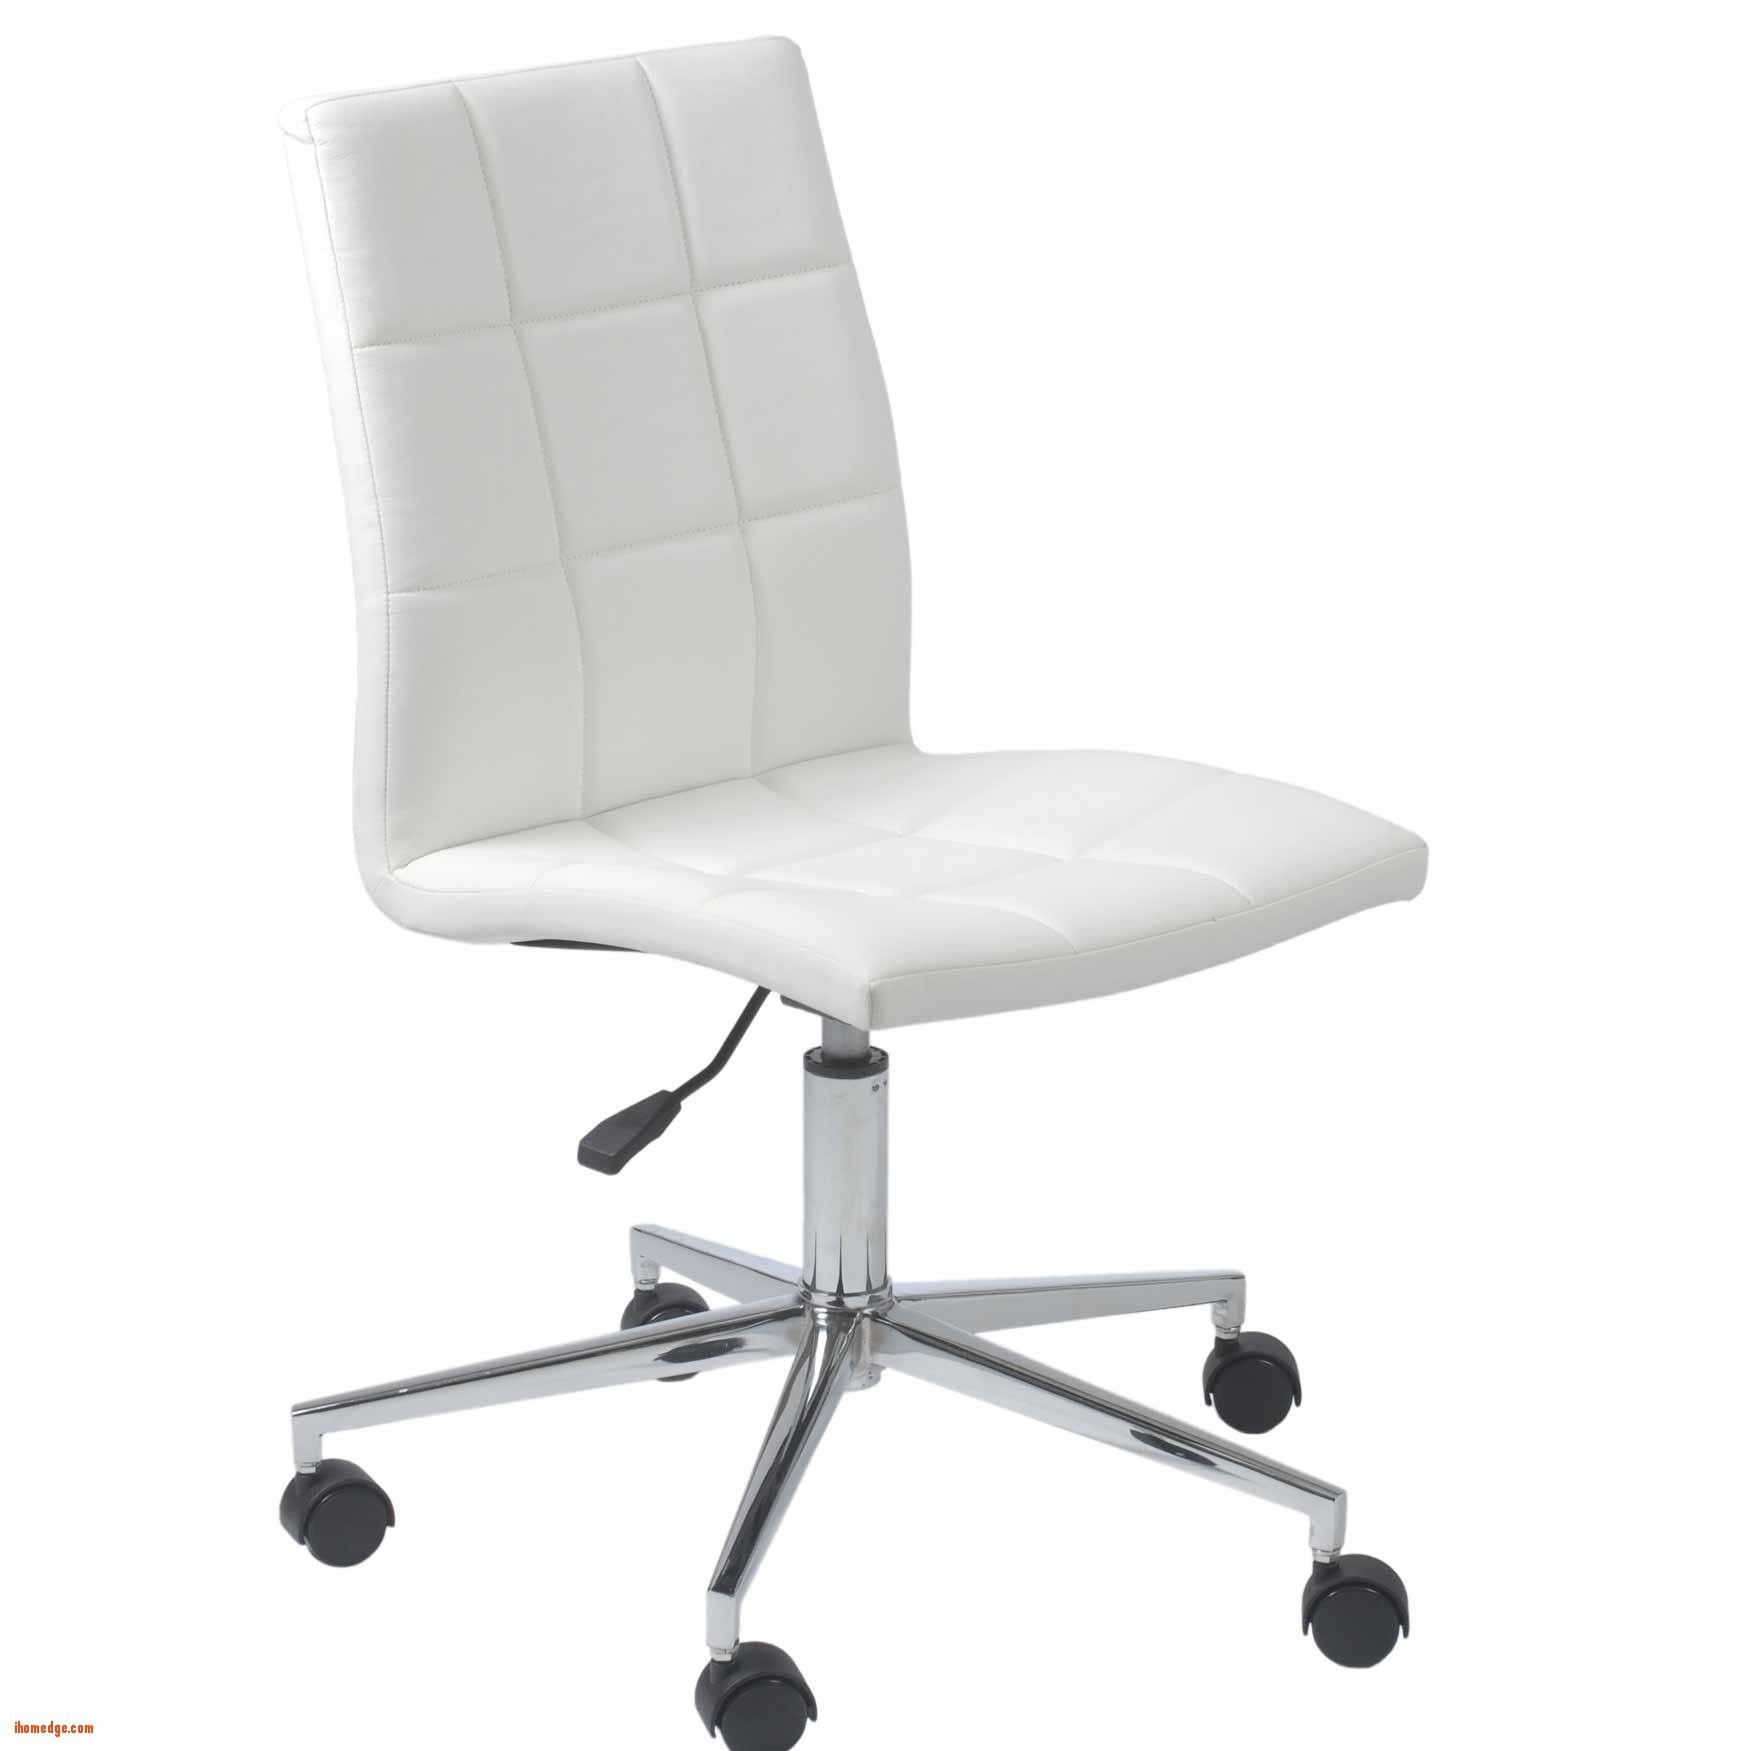 Ordinaire Cool New Modern Desk Chair , Upholstered Fice Chair No Wheels ,  Http://ihomedge.com/modern Desk Chair/4959